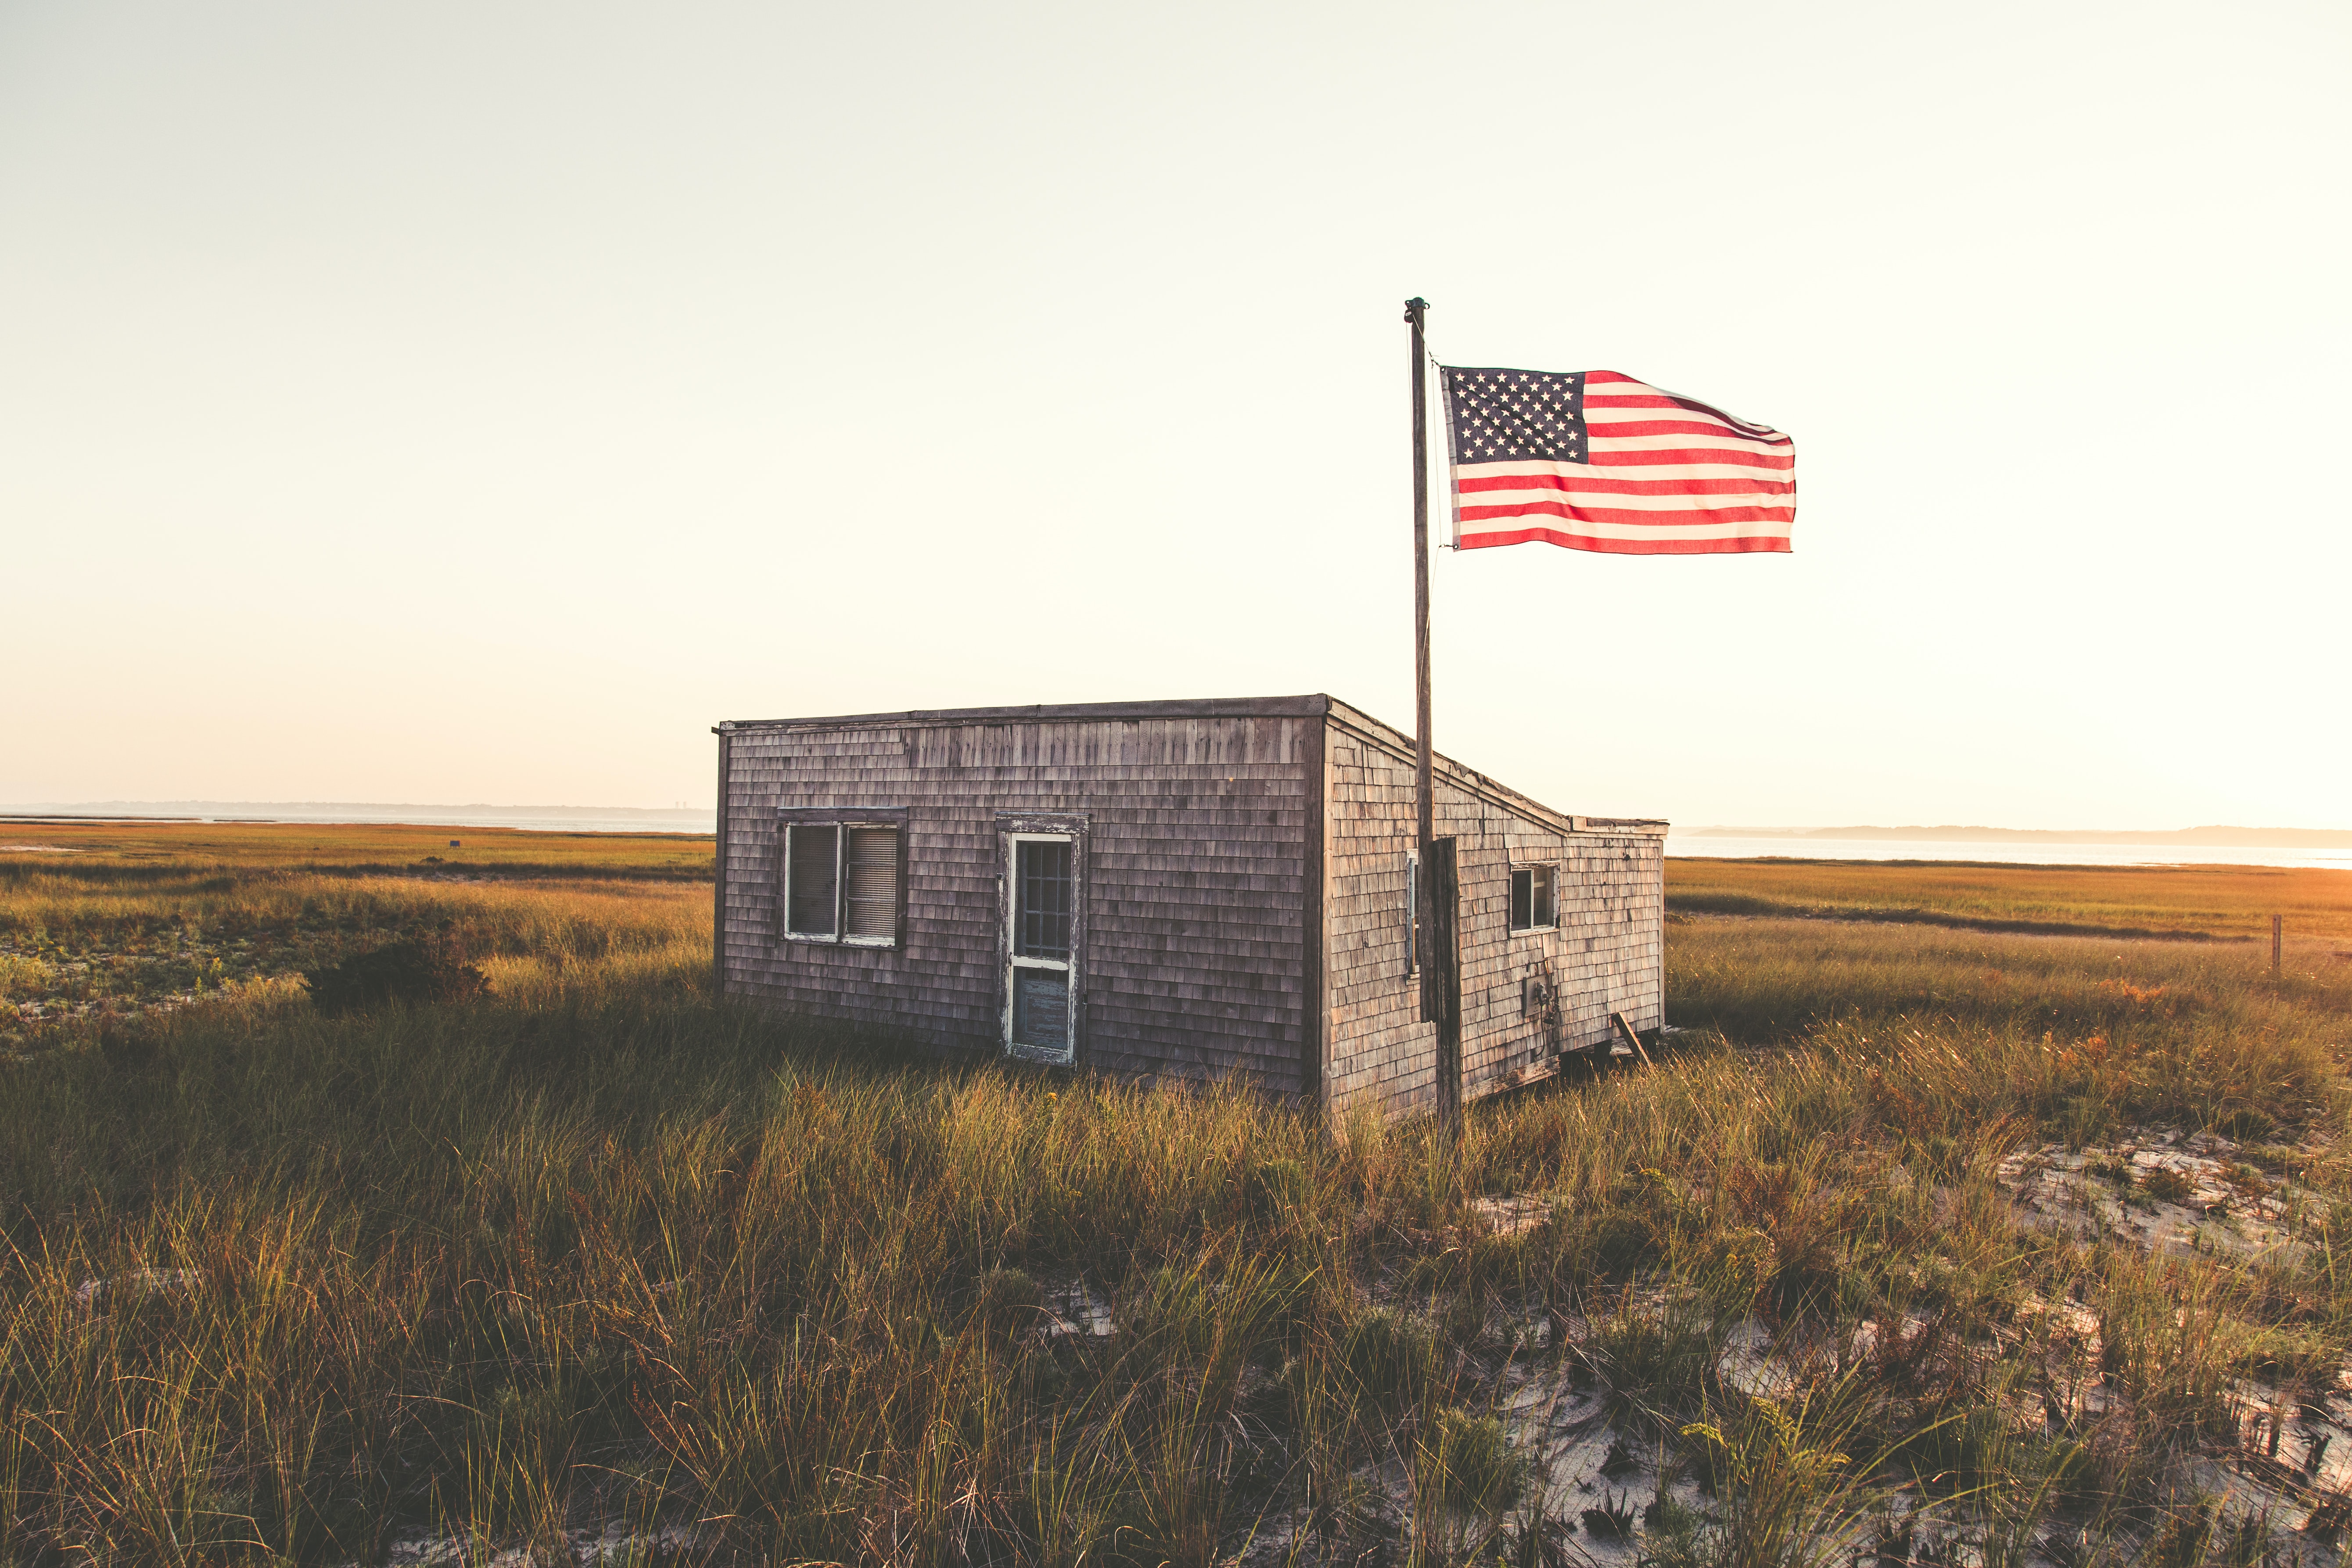 shed with USA flag outdoor during daytime